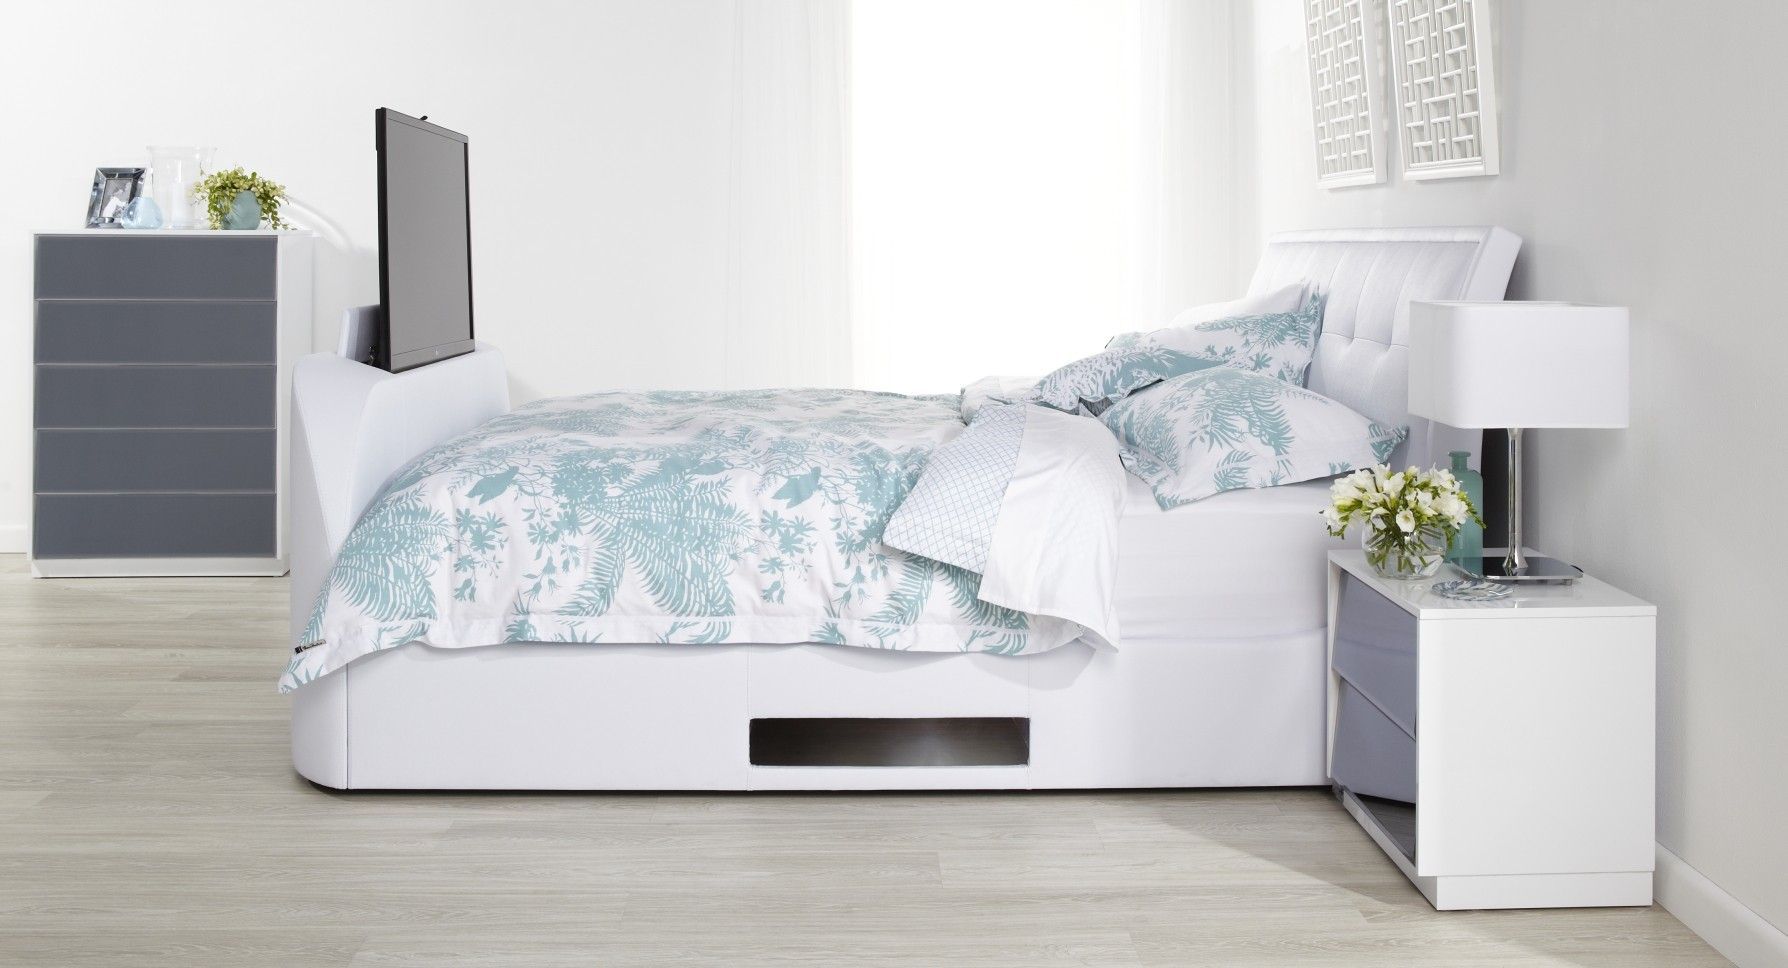 Bed With Tv Built In Lara Upholstered Kids Bed With Blue And White Patterned Linen And